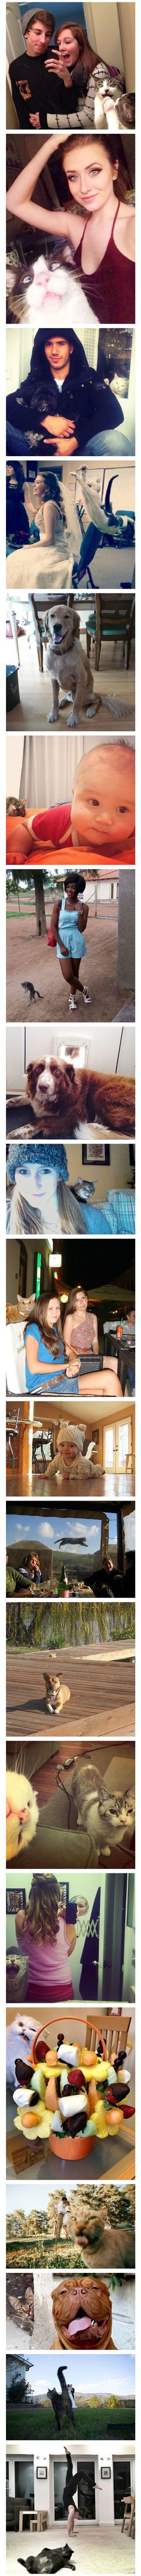 20 Funny Cat Photobombs To Make You Smile - jajaja gatos. Cute Funny Animals, Funny Cute, Cute Cats, Hilarious, Funny Jokes, Super Funny, Funny Minion, Funny Cat Photos, Funny Animal Pictures